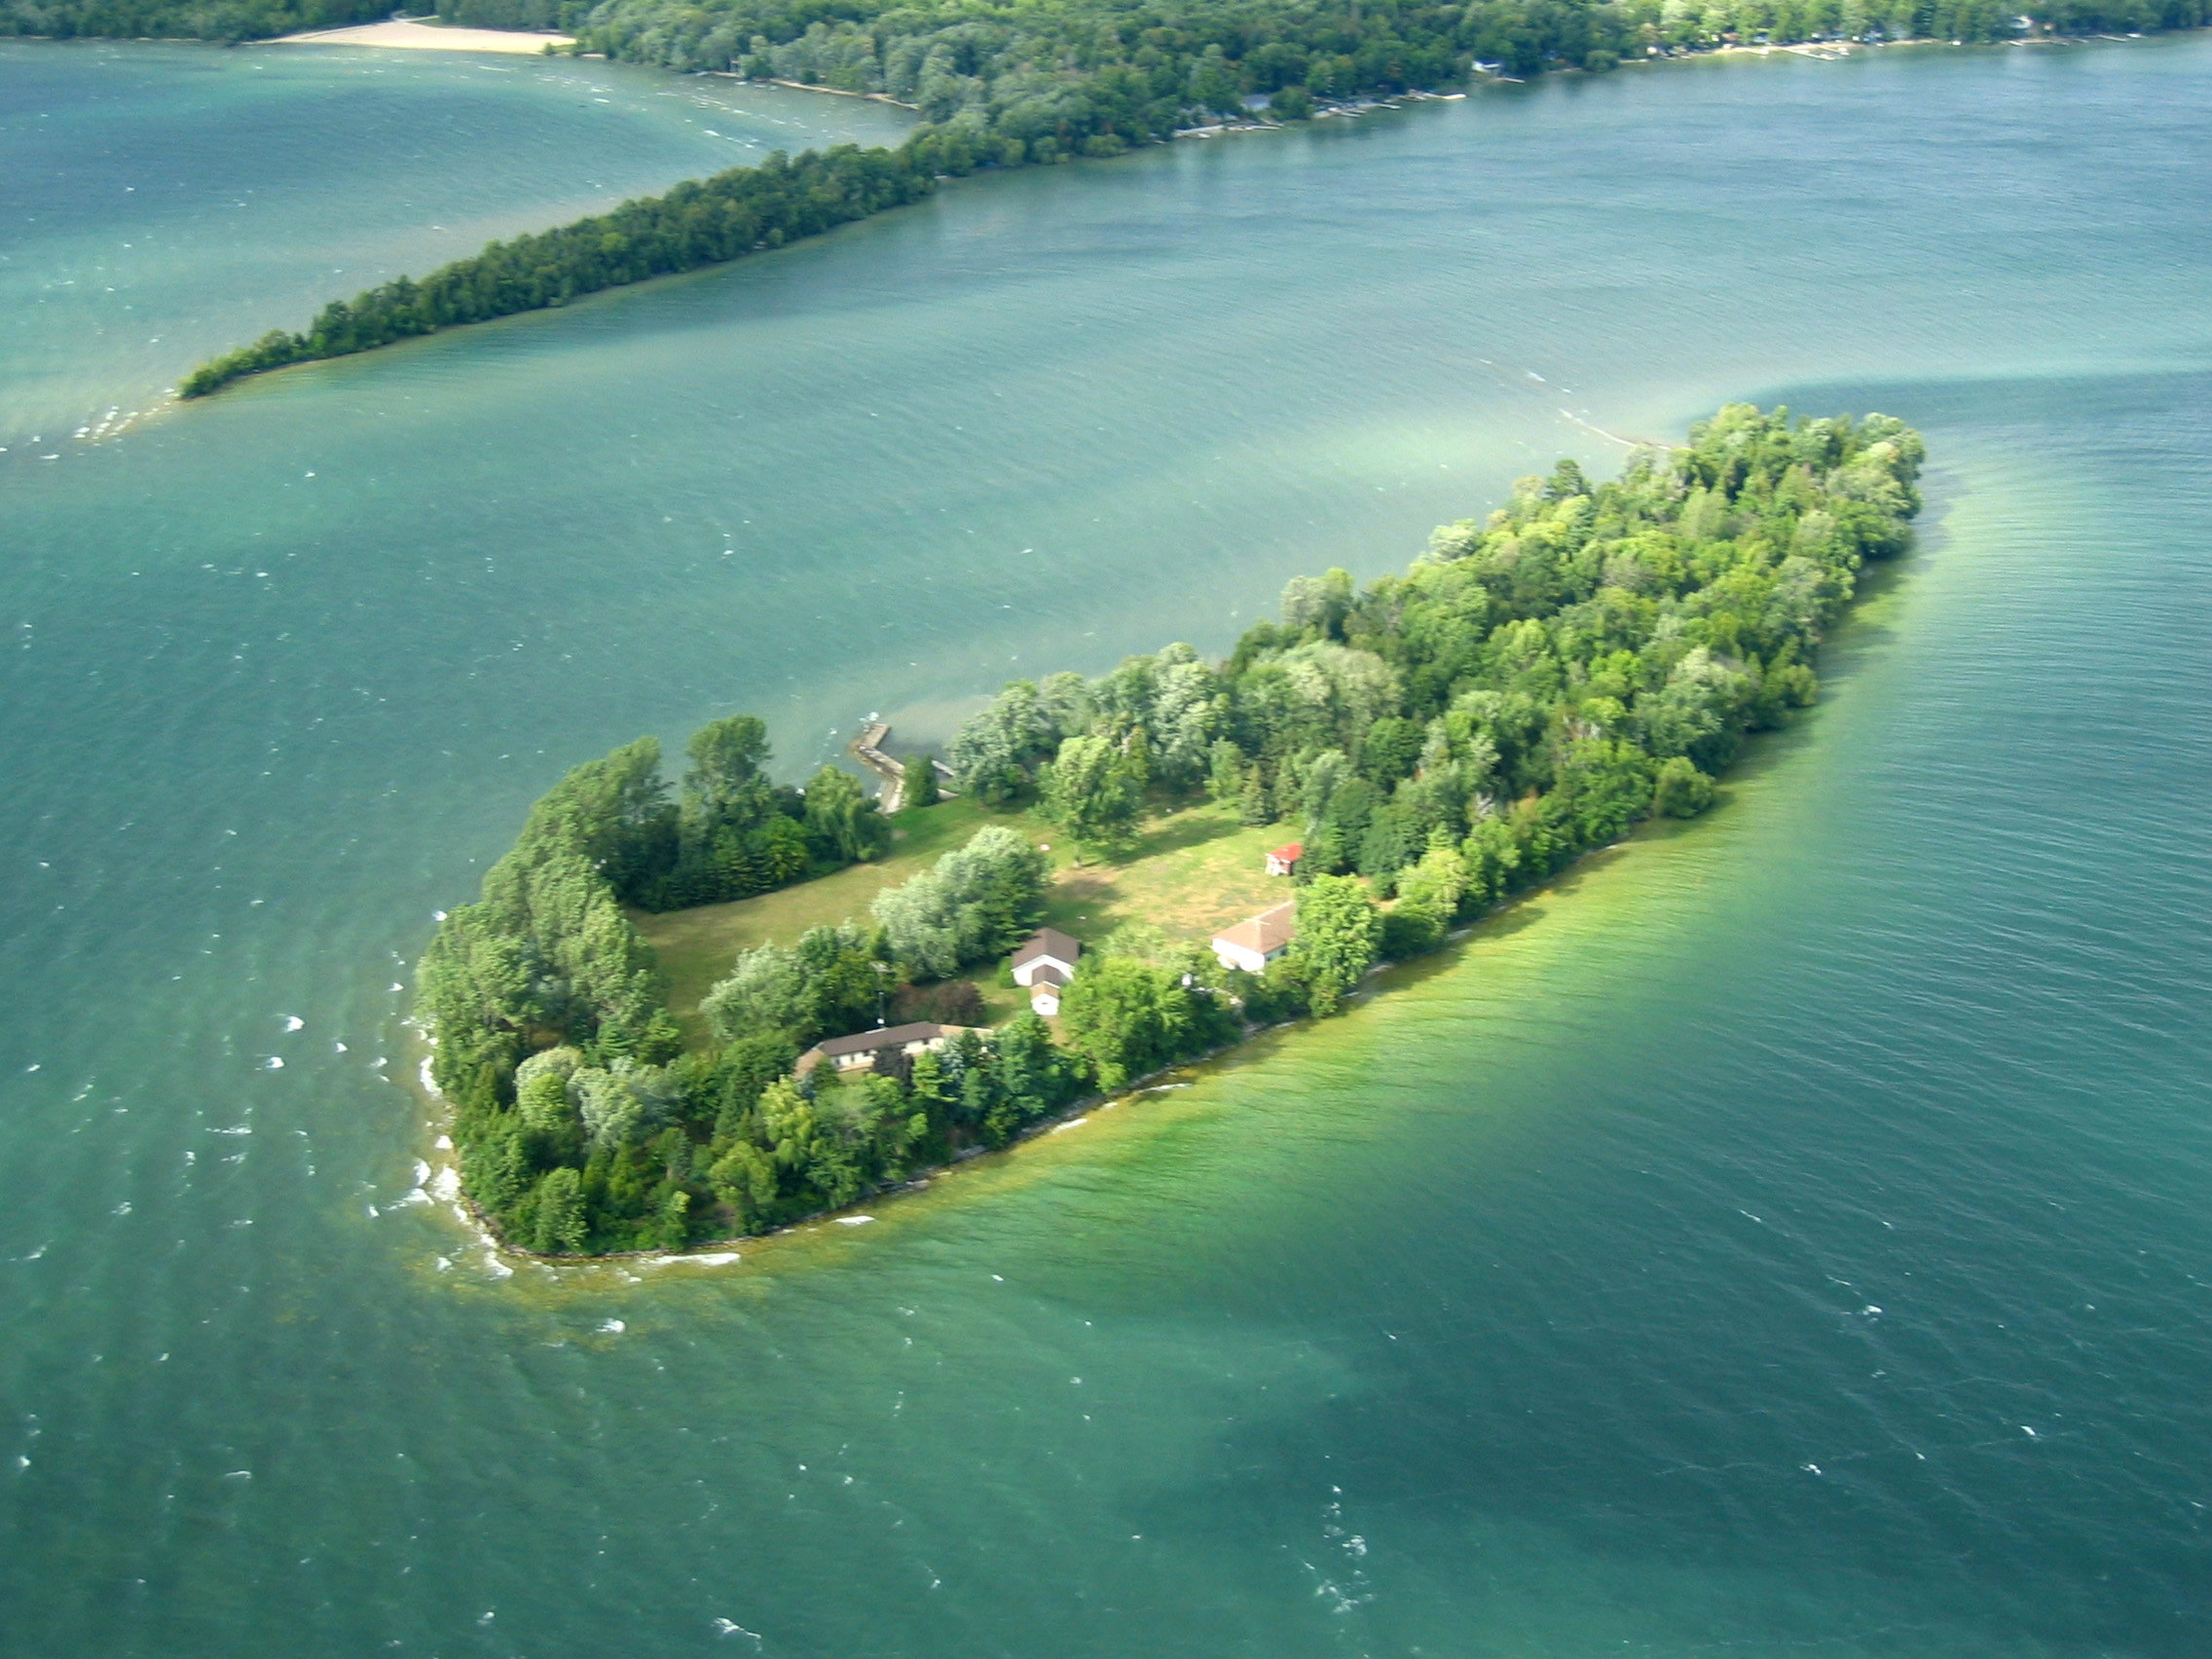 Private Islands Inc, Toronto, Ontario. 33K likes. Private Islands Inc. represents the largest majority of islands available for sale or rent in the World.